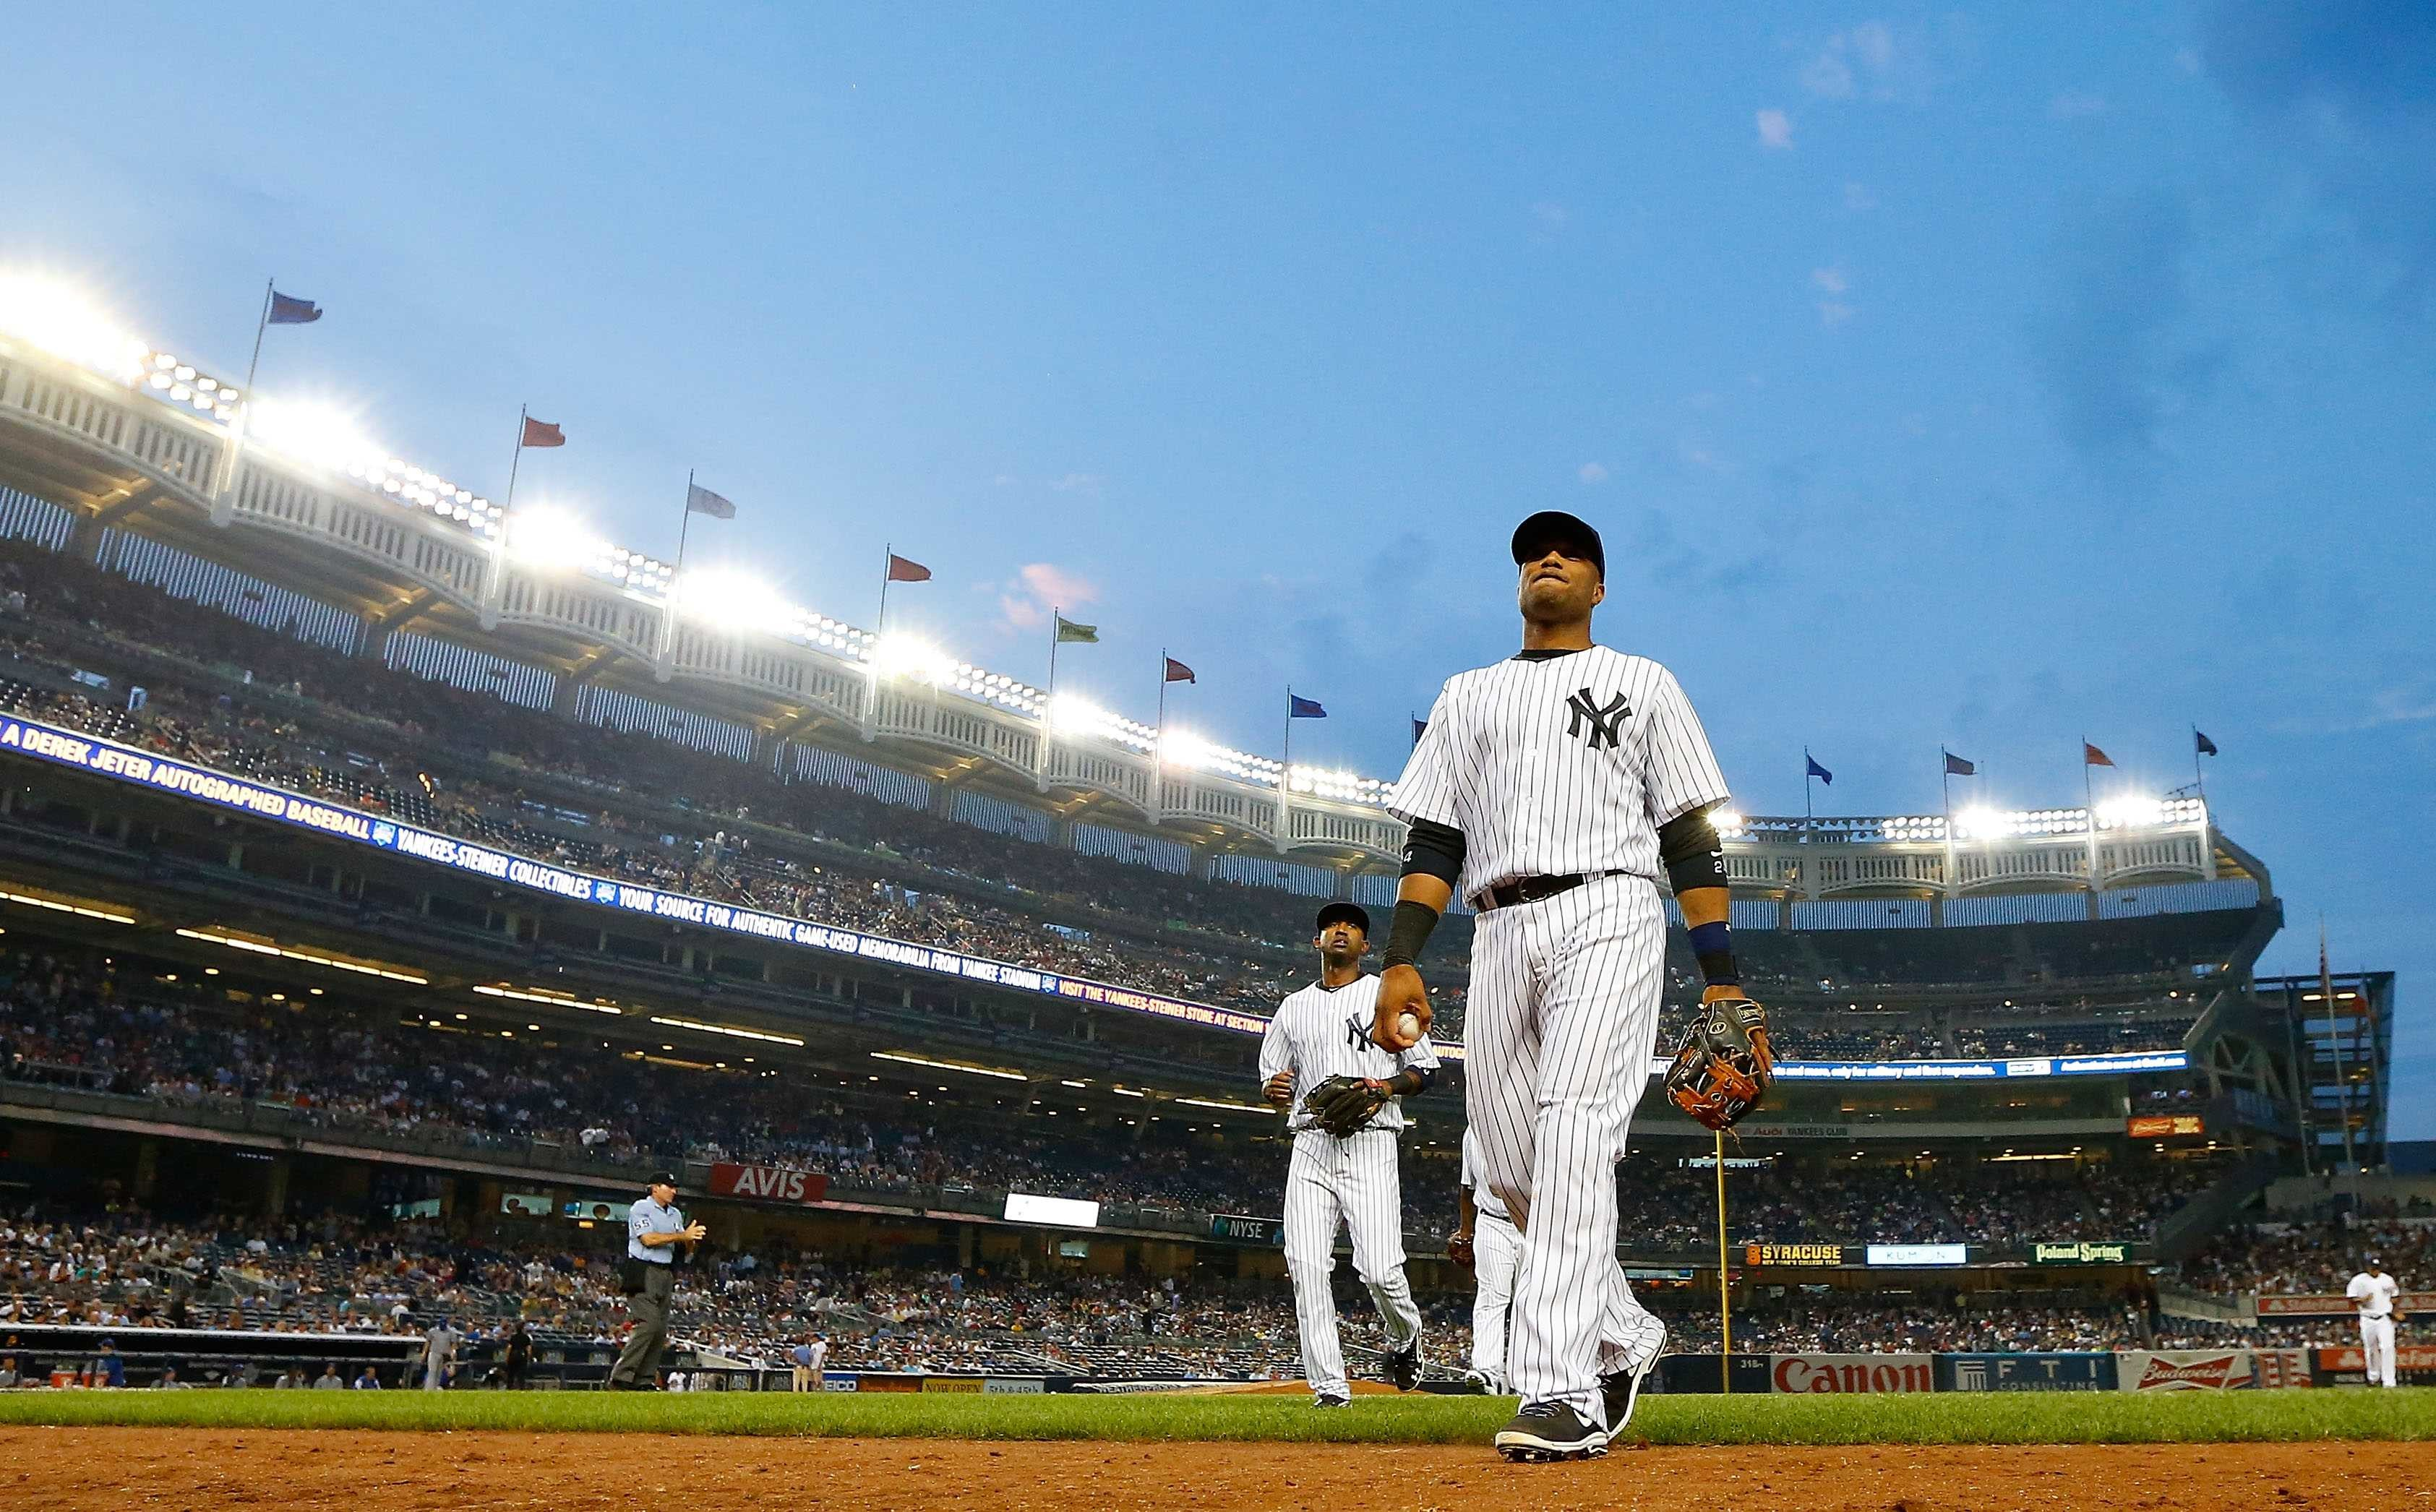 Res: 3370x2092, New York Yankees Baseball Mlb Fl Hd Wallpaper Full Of Computer Pics